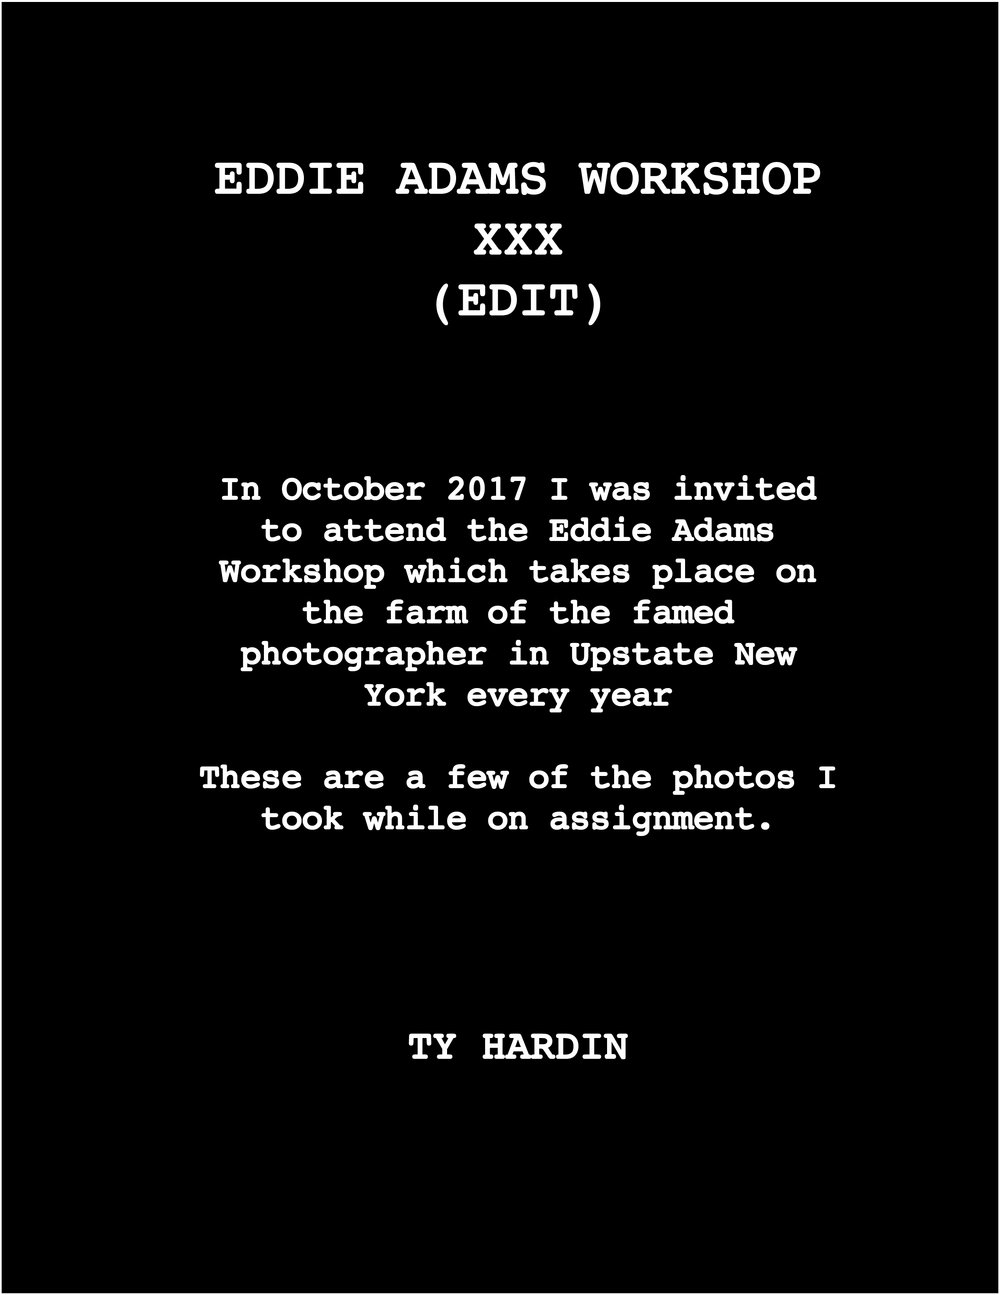 Eddie-Adams-Workshop-Edit.jpg